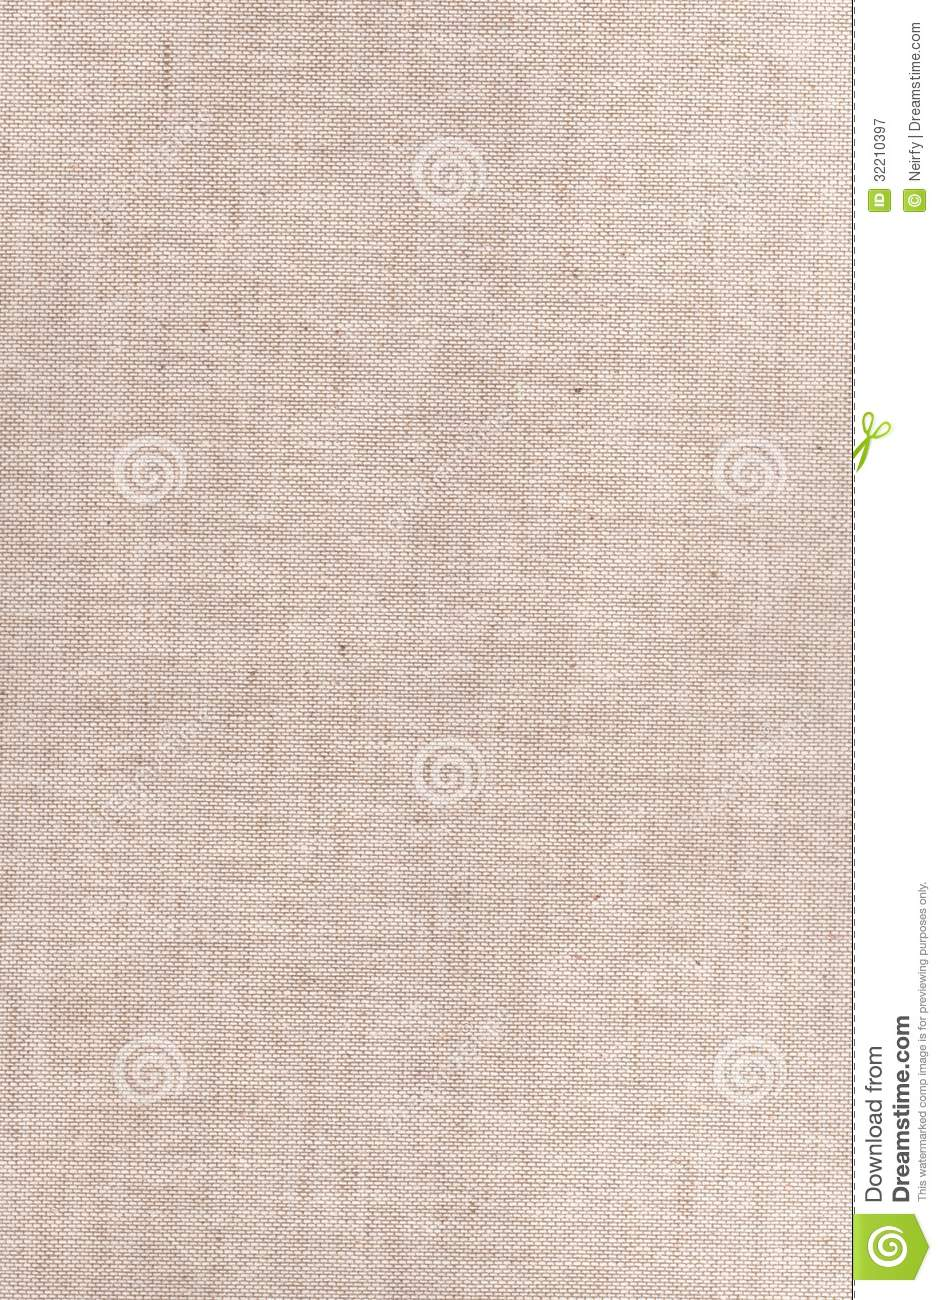 Fabric Book Cover Texture : Old book cloth background royalty free stock photography